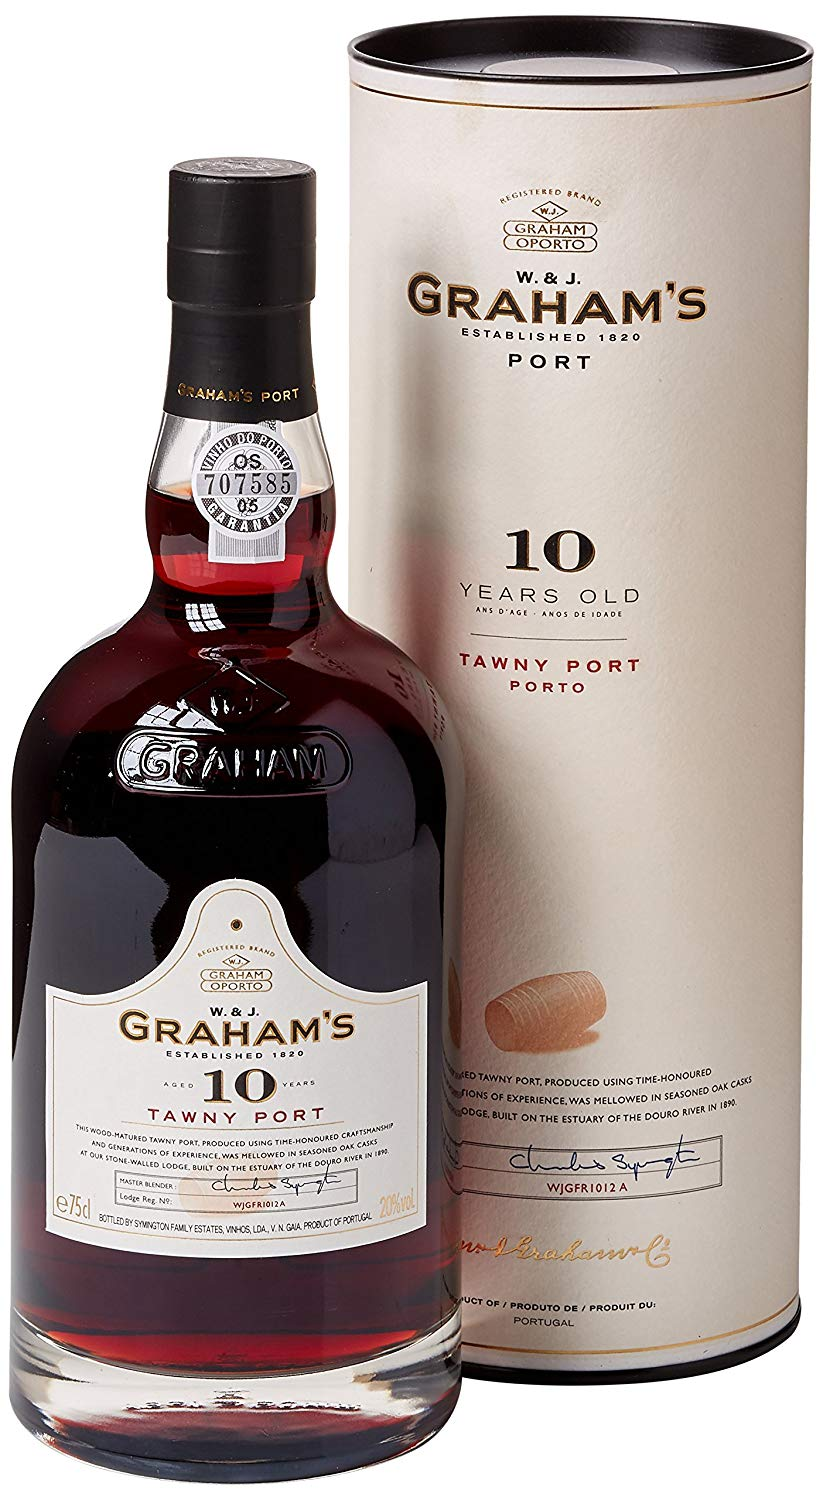 Grahams 10 Years Old Tawny Port, 75 cl, £13.5 Prime/£17.99 Non Prime